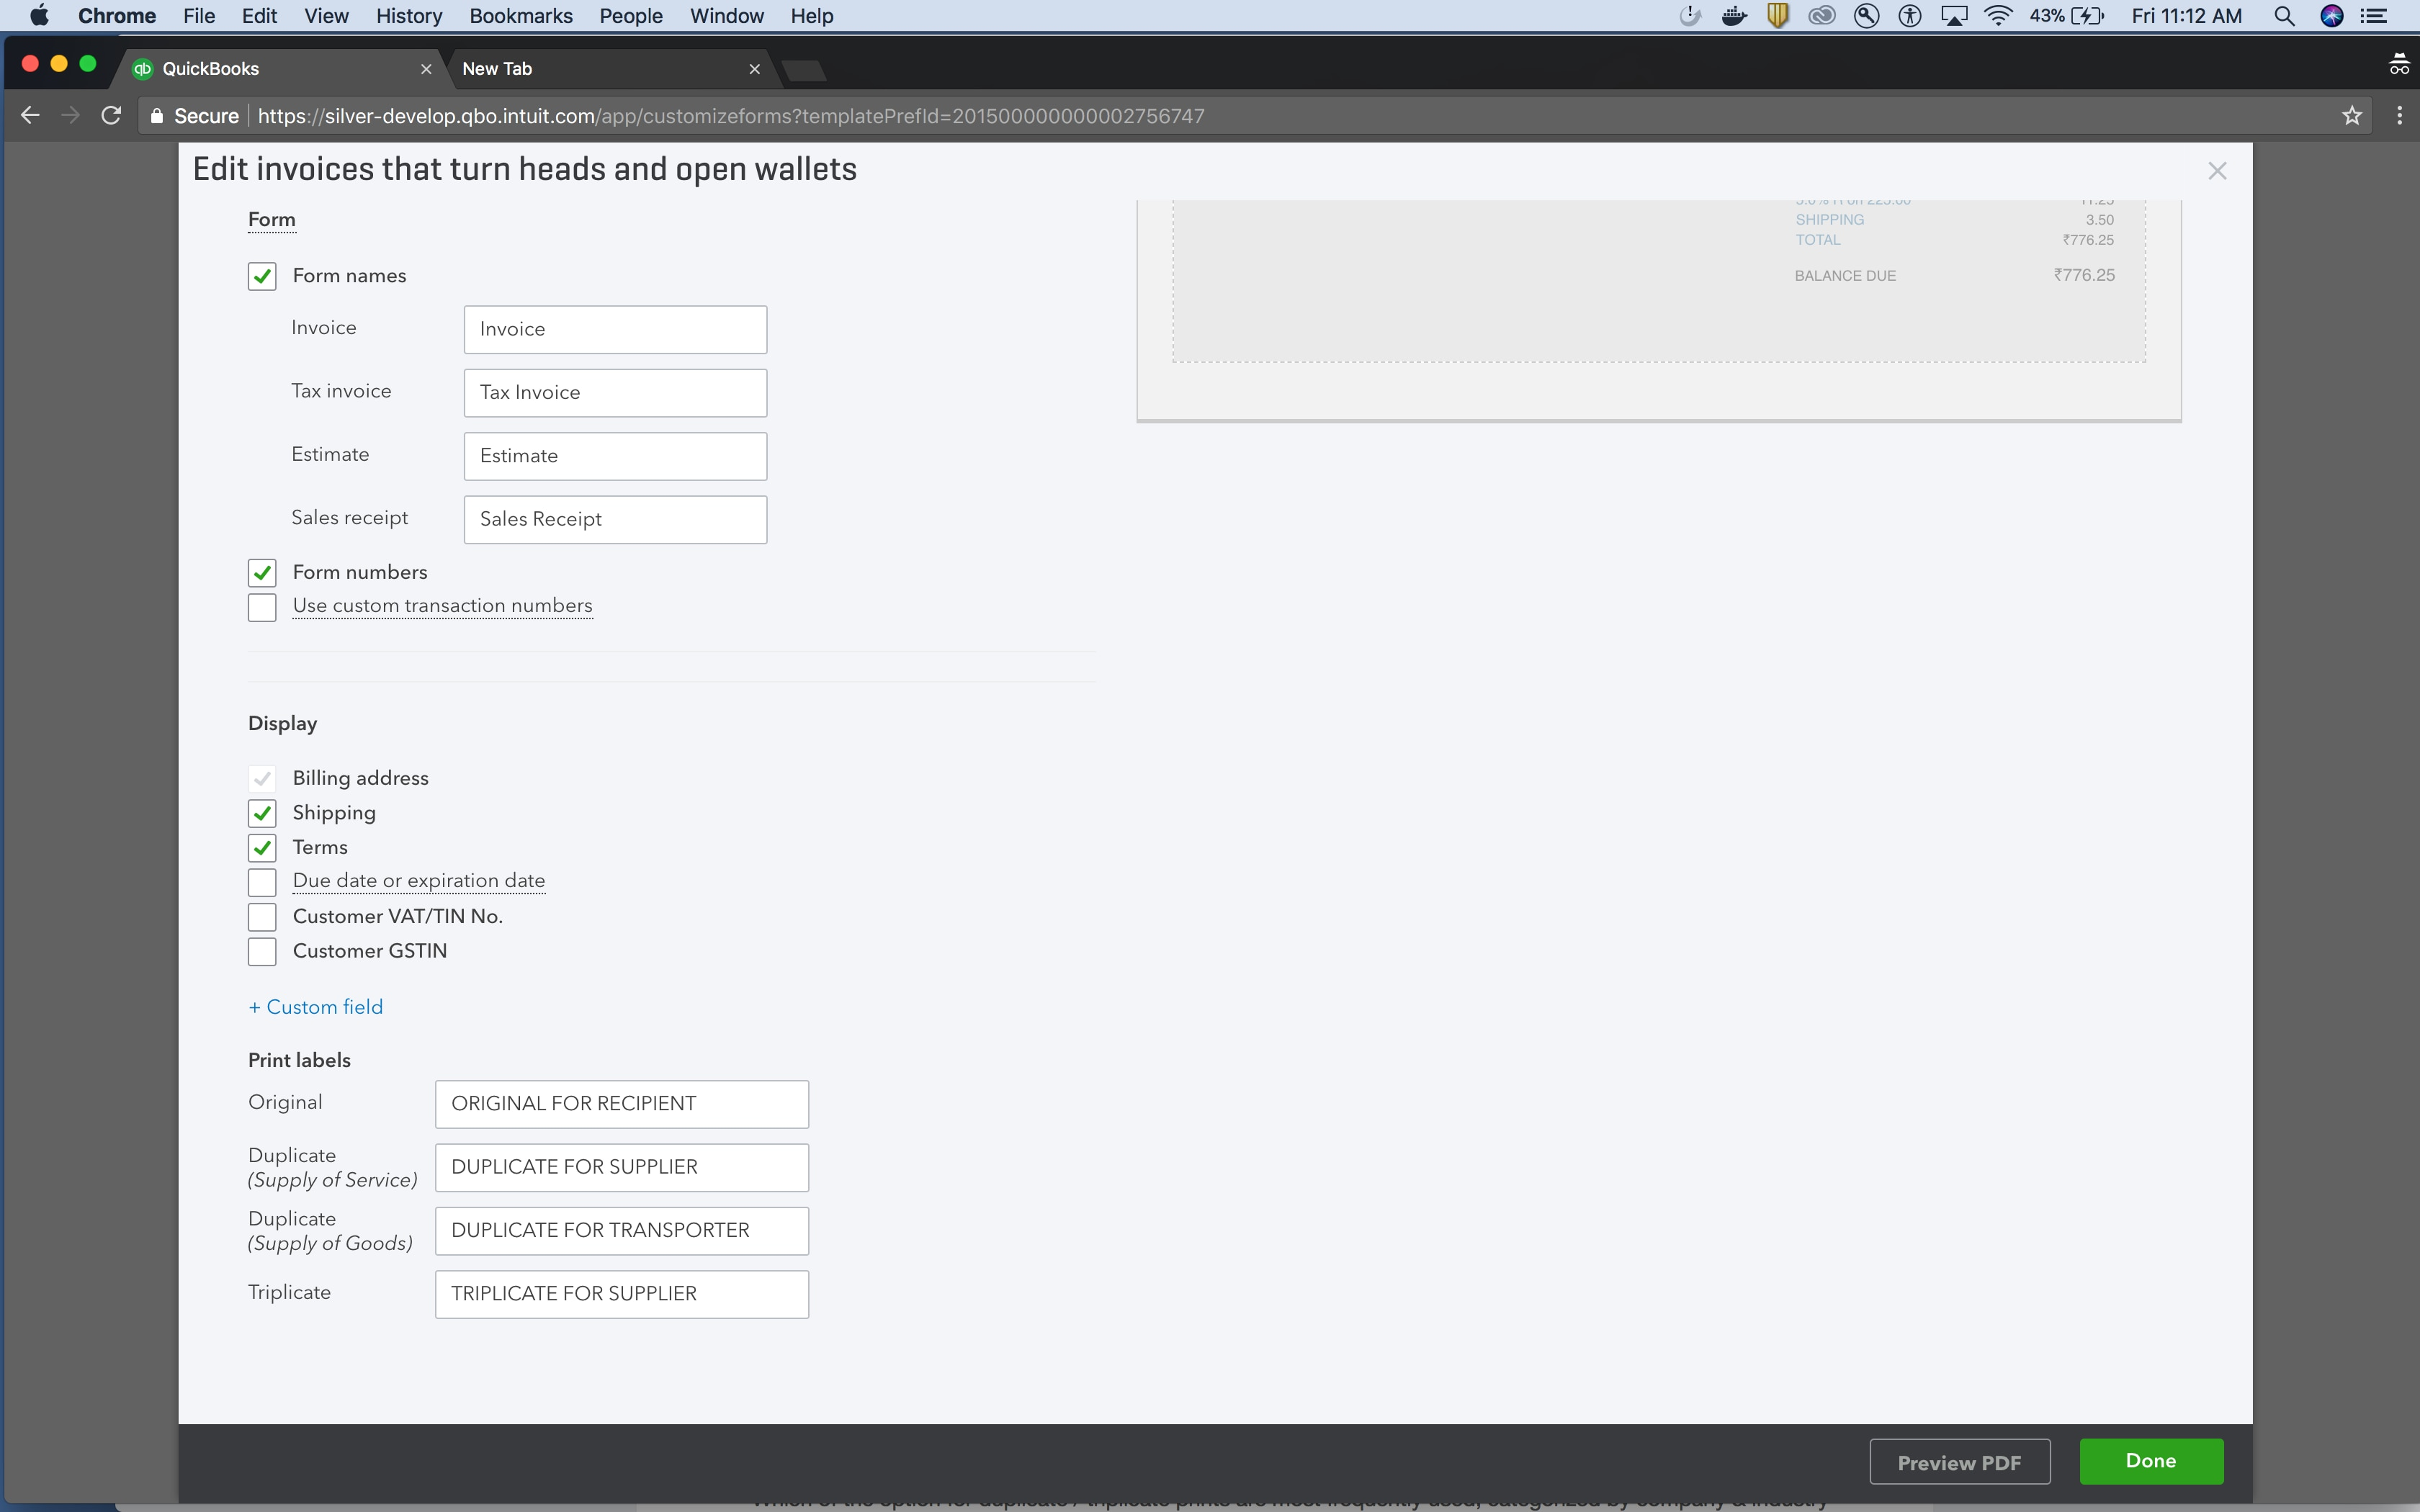 Invoice label customisation settings